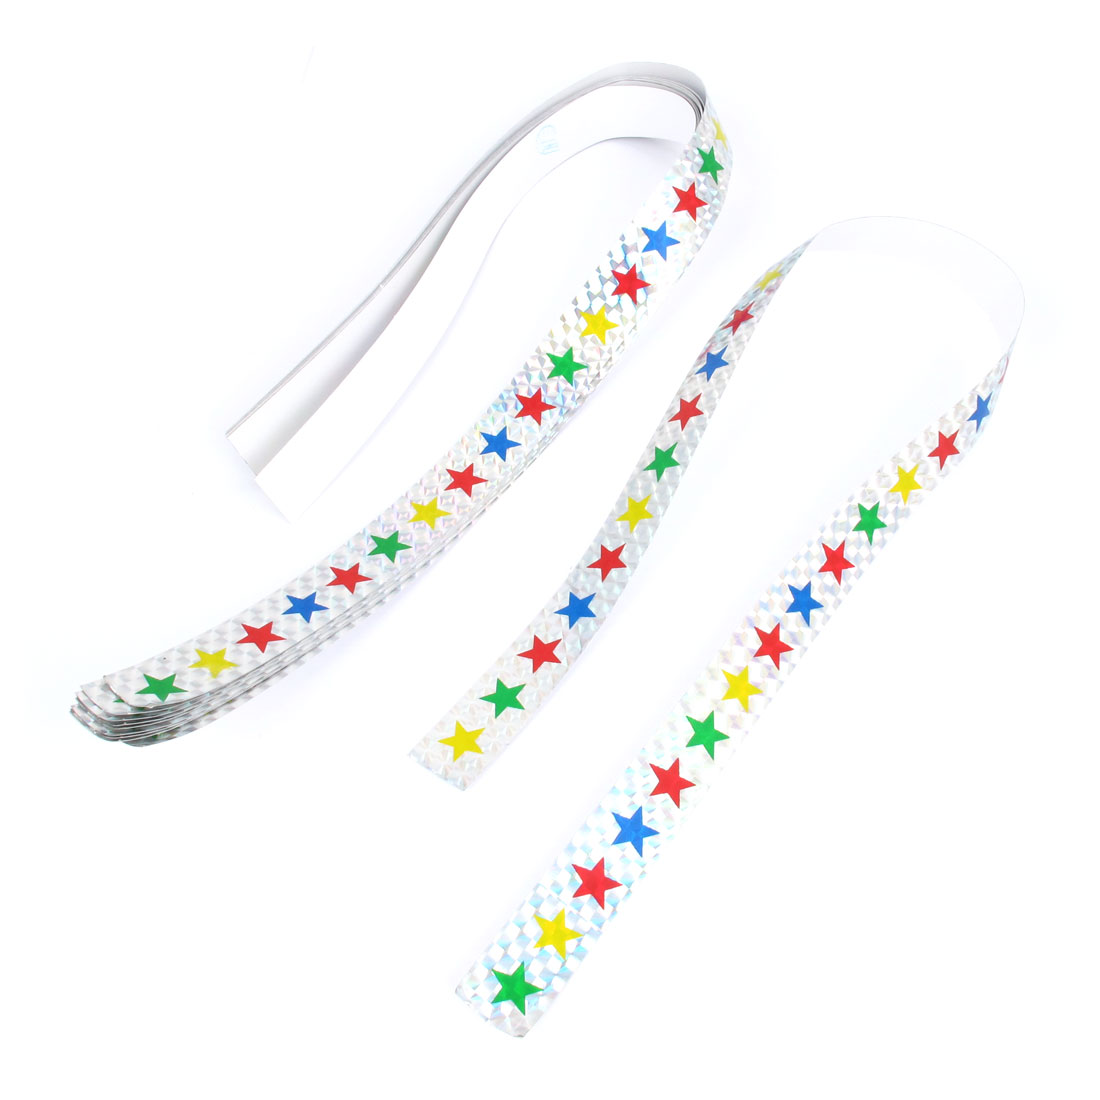 10 Pcs 53 x 2cm Colorful Star Pattern Adhesive Reflective Sticker Decal Sign for Car Auto